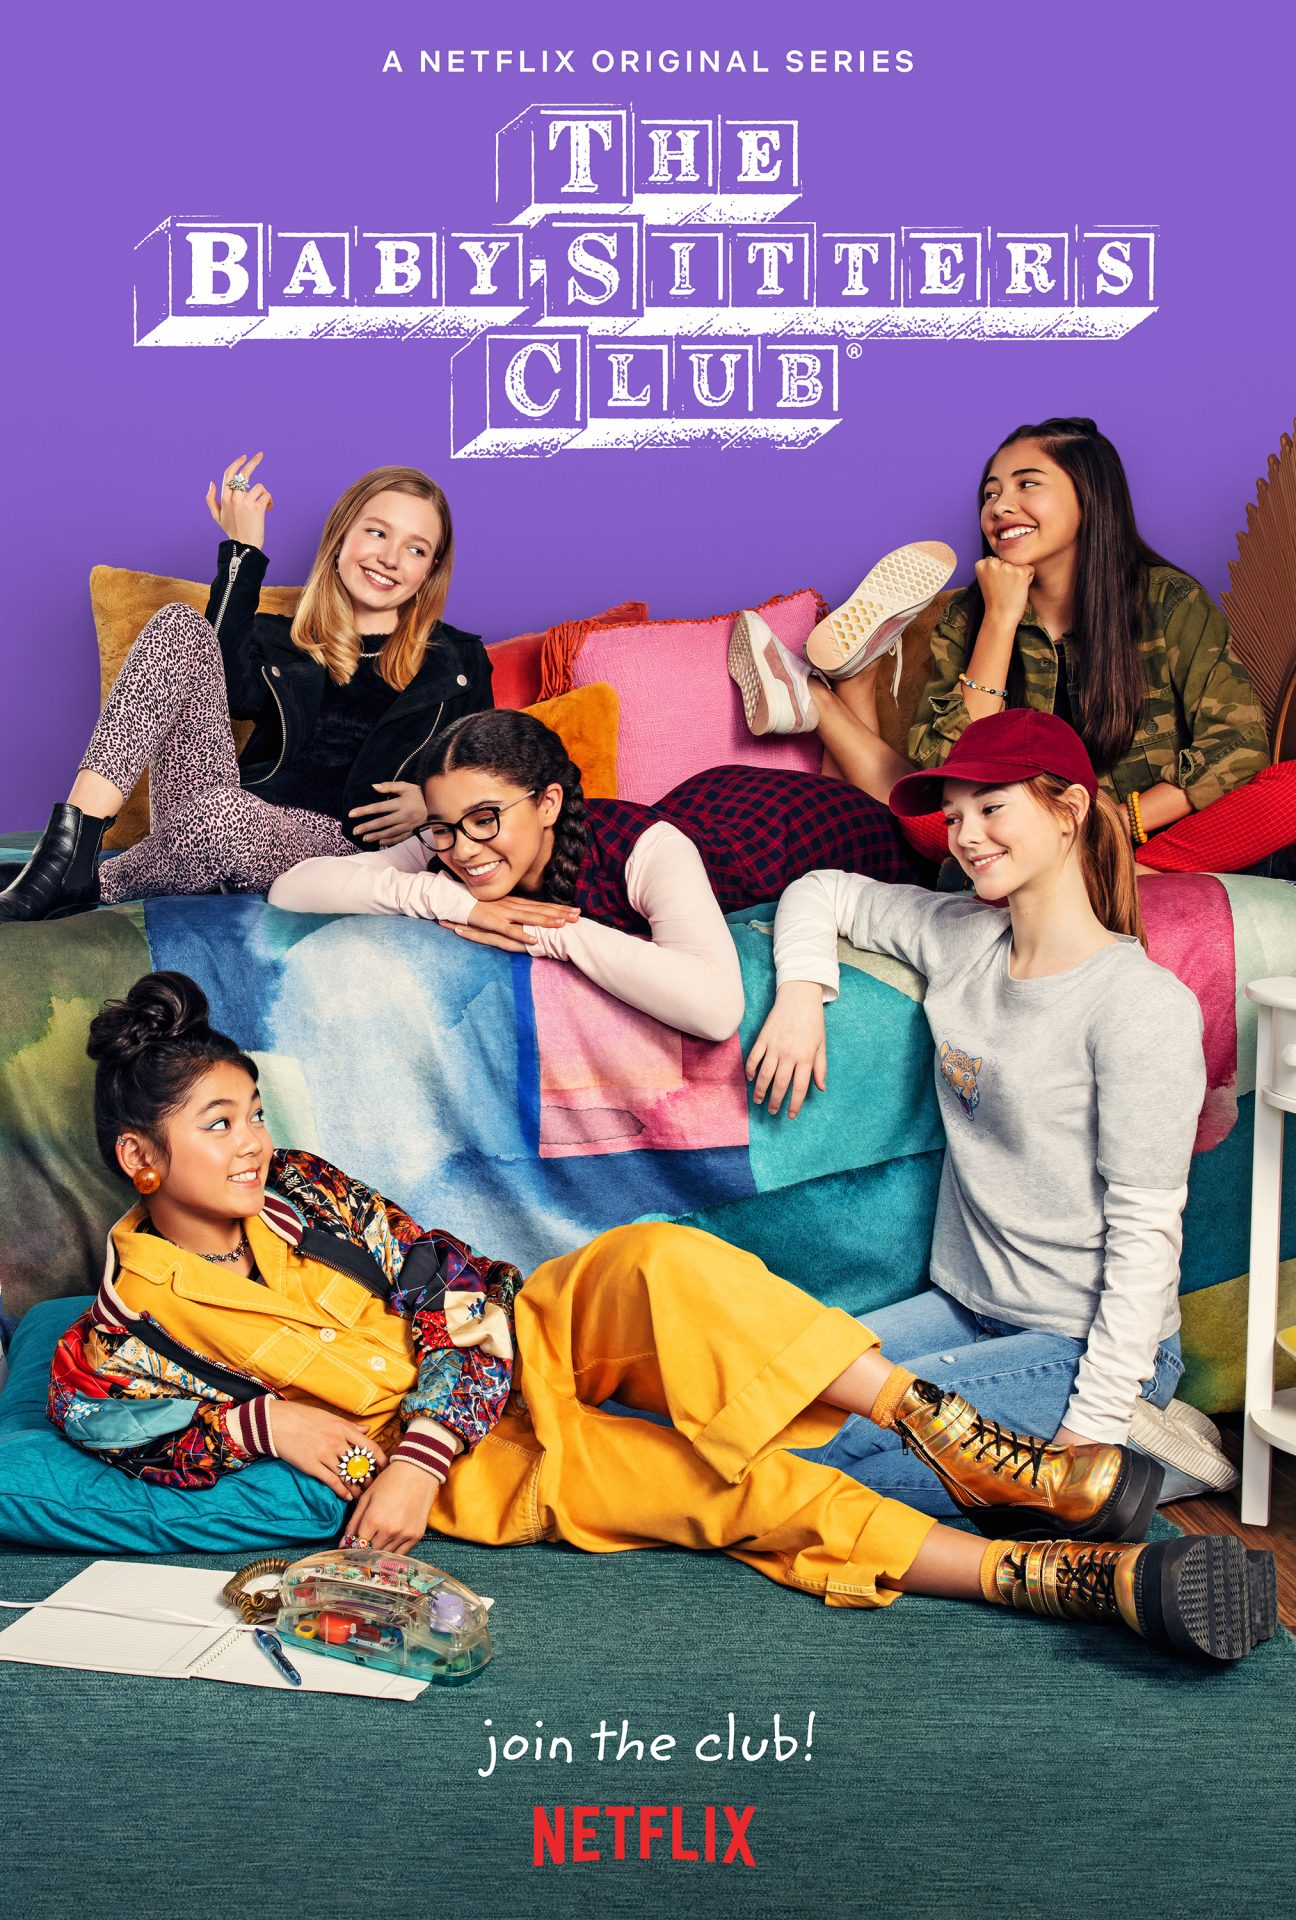 Baby-Sitter's Club poster shows five girls laying on a bed looking at a phone